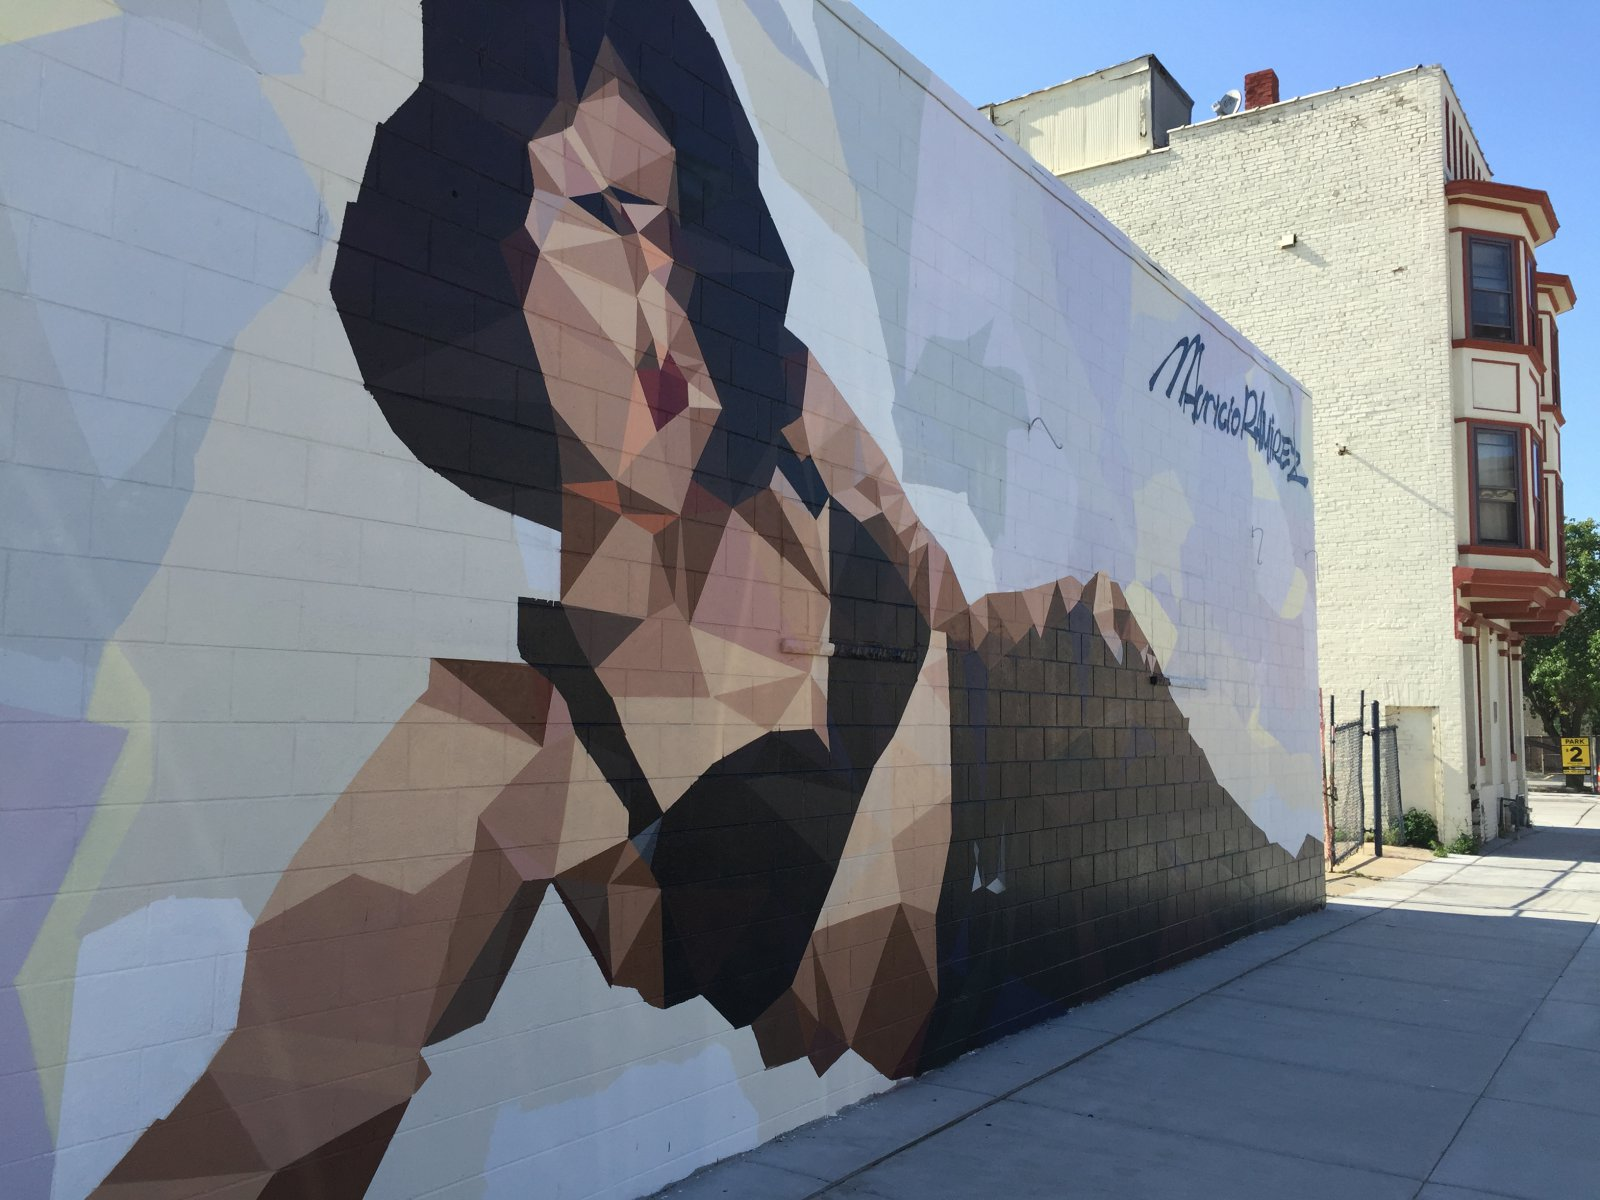 Mural of Selena Quintanilla-Pérez by Mauricio Ramirez in Walker's Point. Photo by Dave Reid.